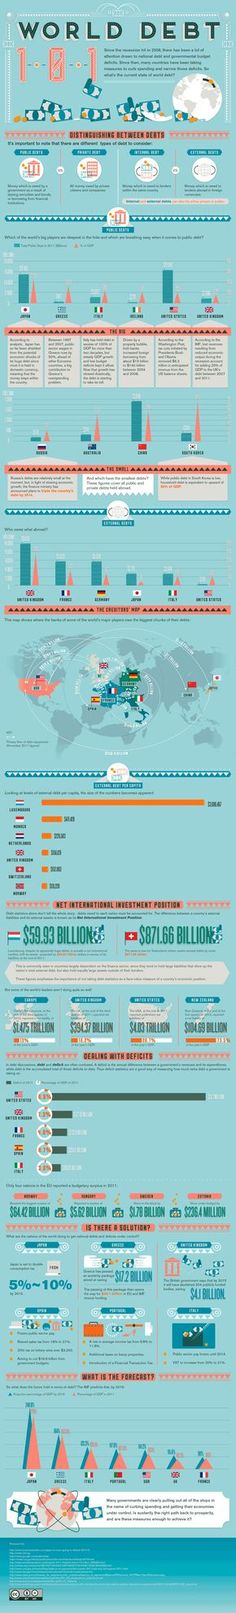 World Debt Infographic